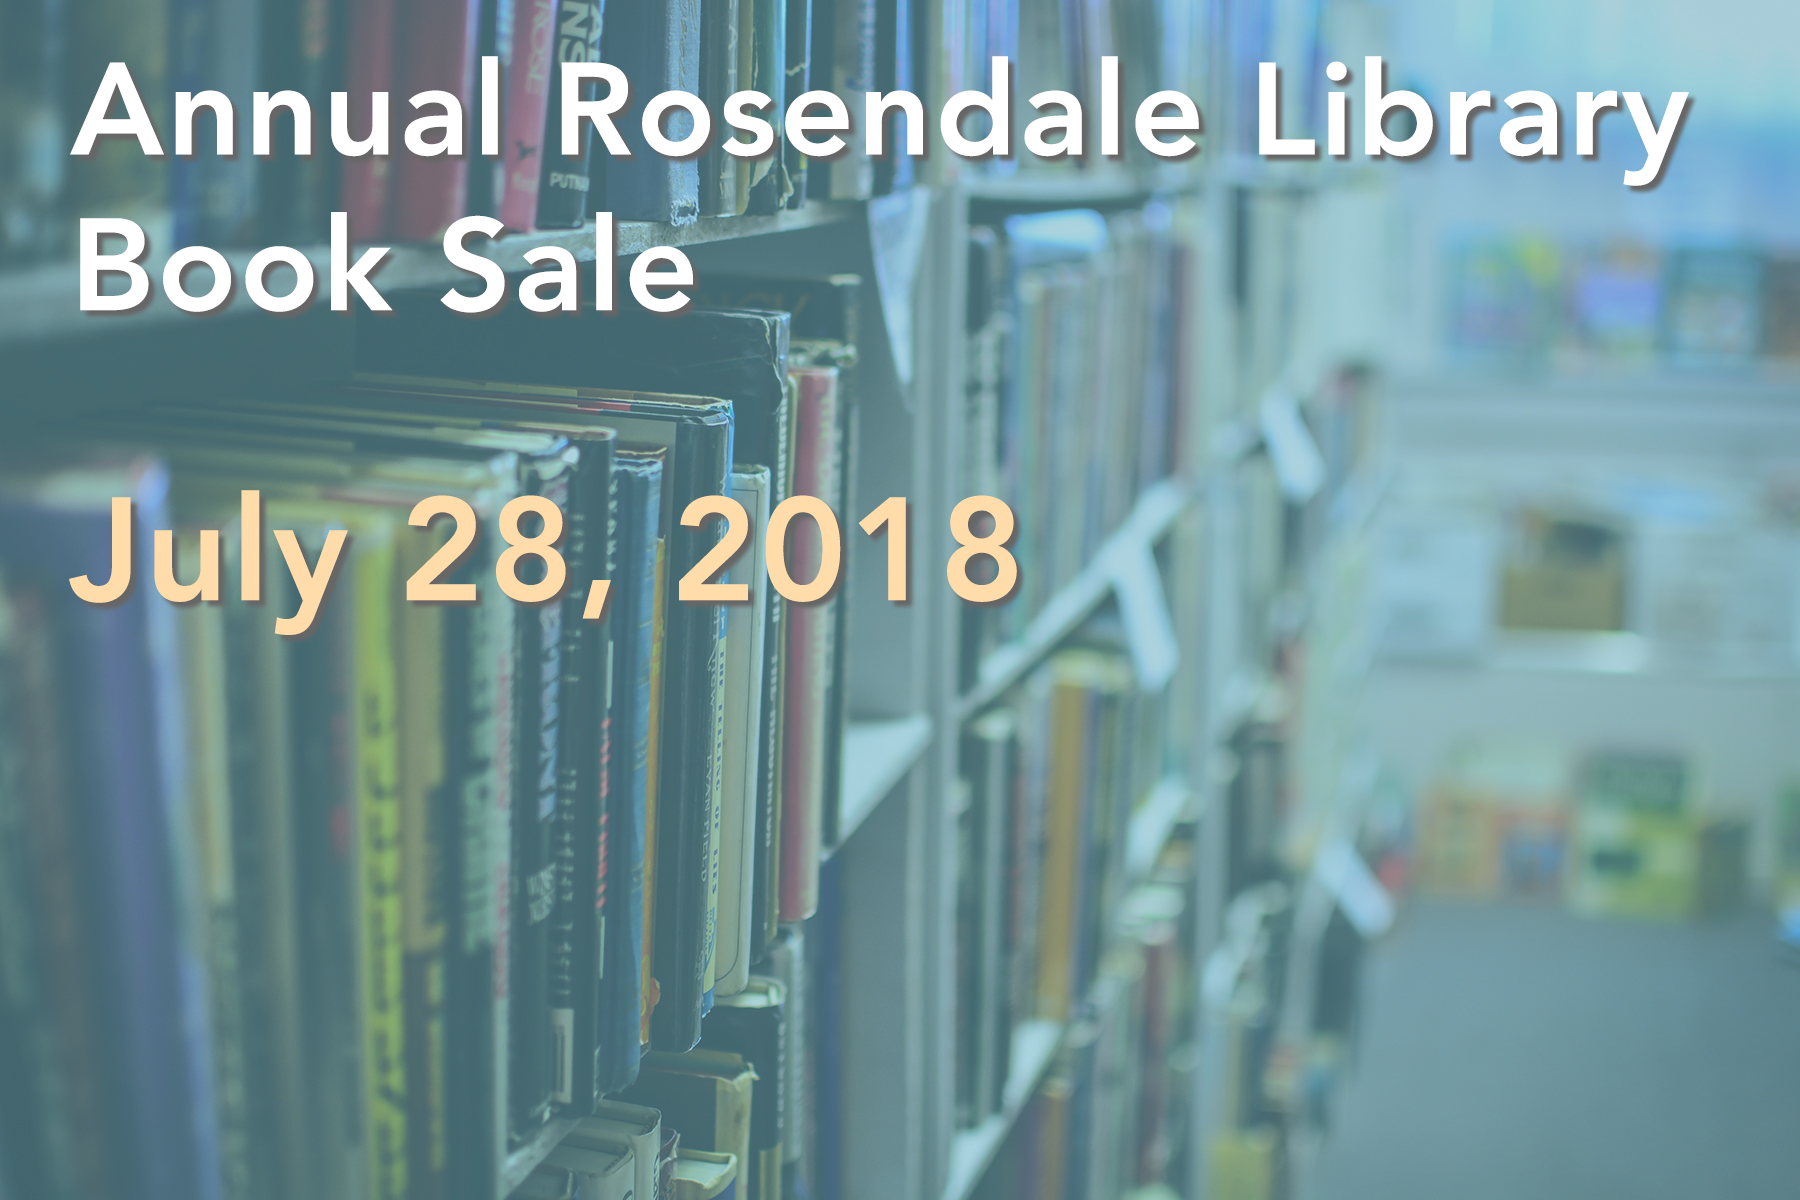 Annual Rosendale Library Book Sale: July 28, 2018